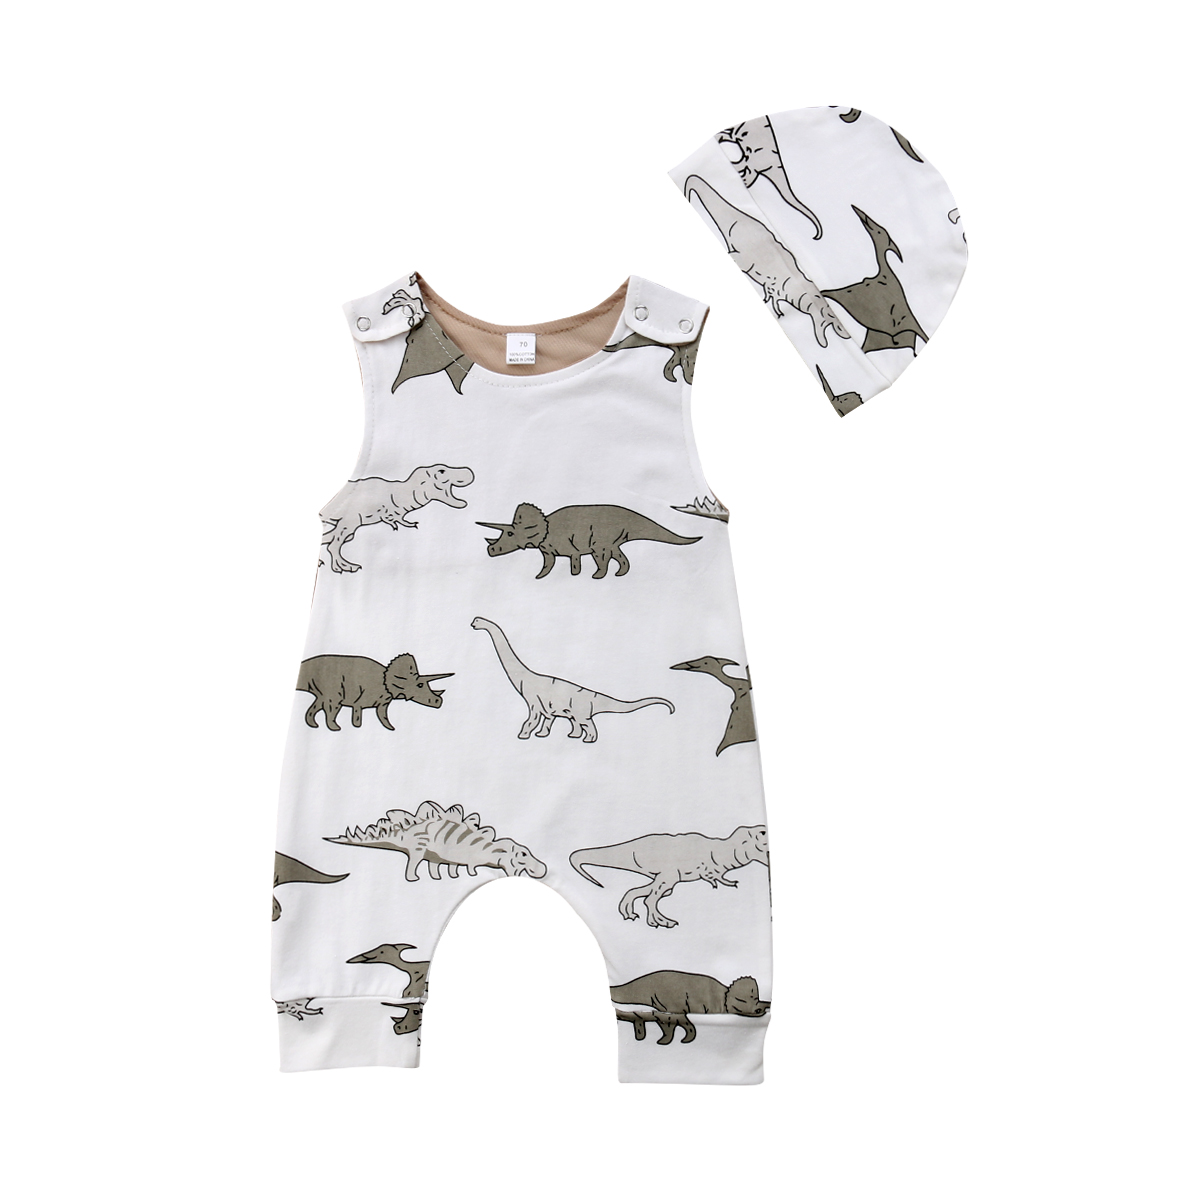 Baby Boy Girl Cotton   Romper   2pcs Newborn Child Clothes Sleeveless Cute Outfits Dino Print Jumpsuit Playsuit Summer Casual New